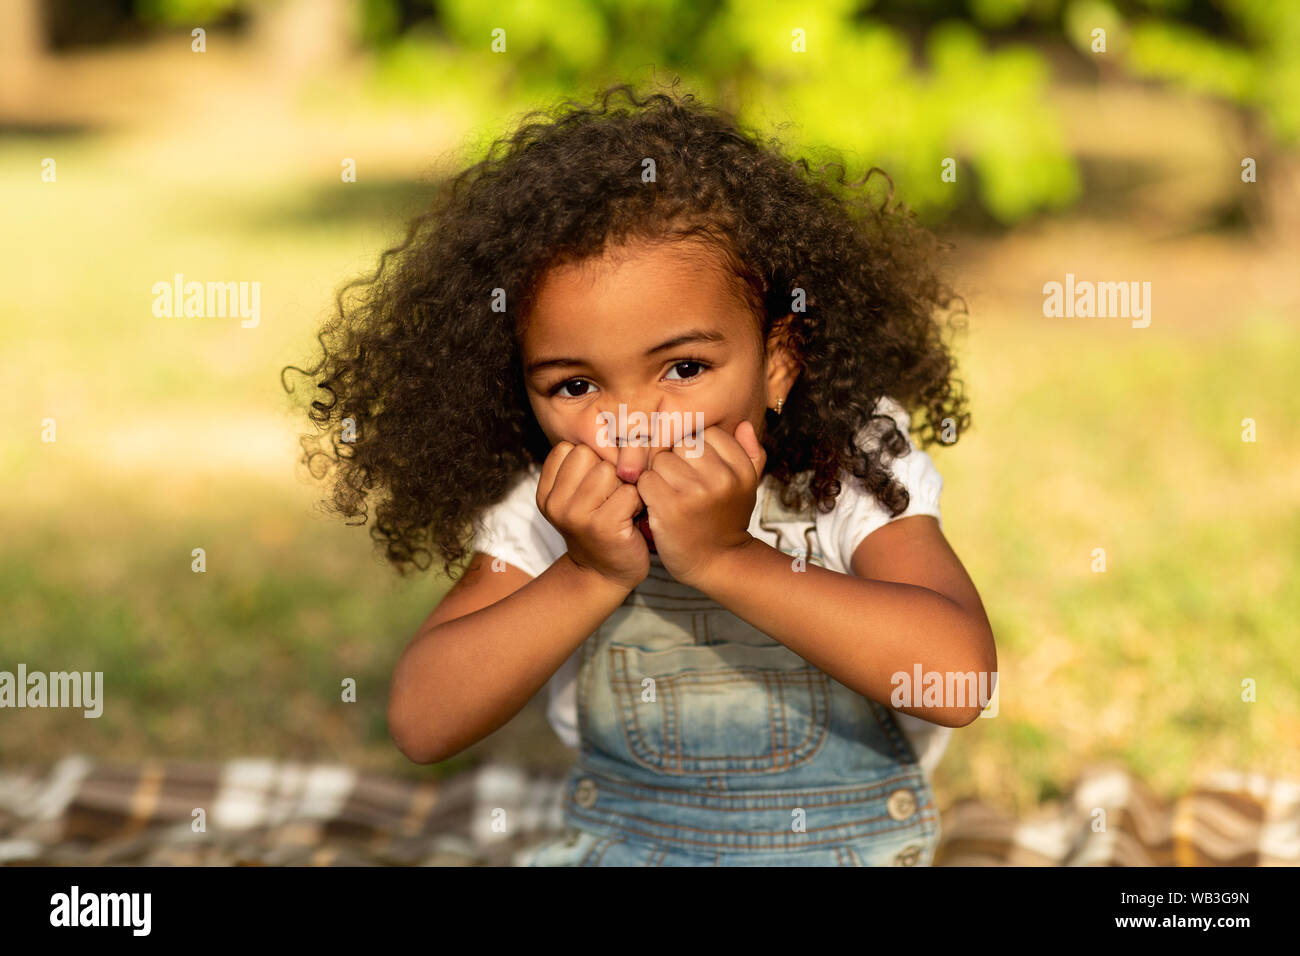 Little girl grimacing and touching cheeks in nature park Stock Photo